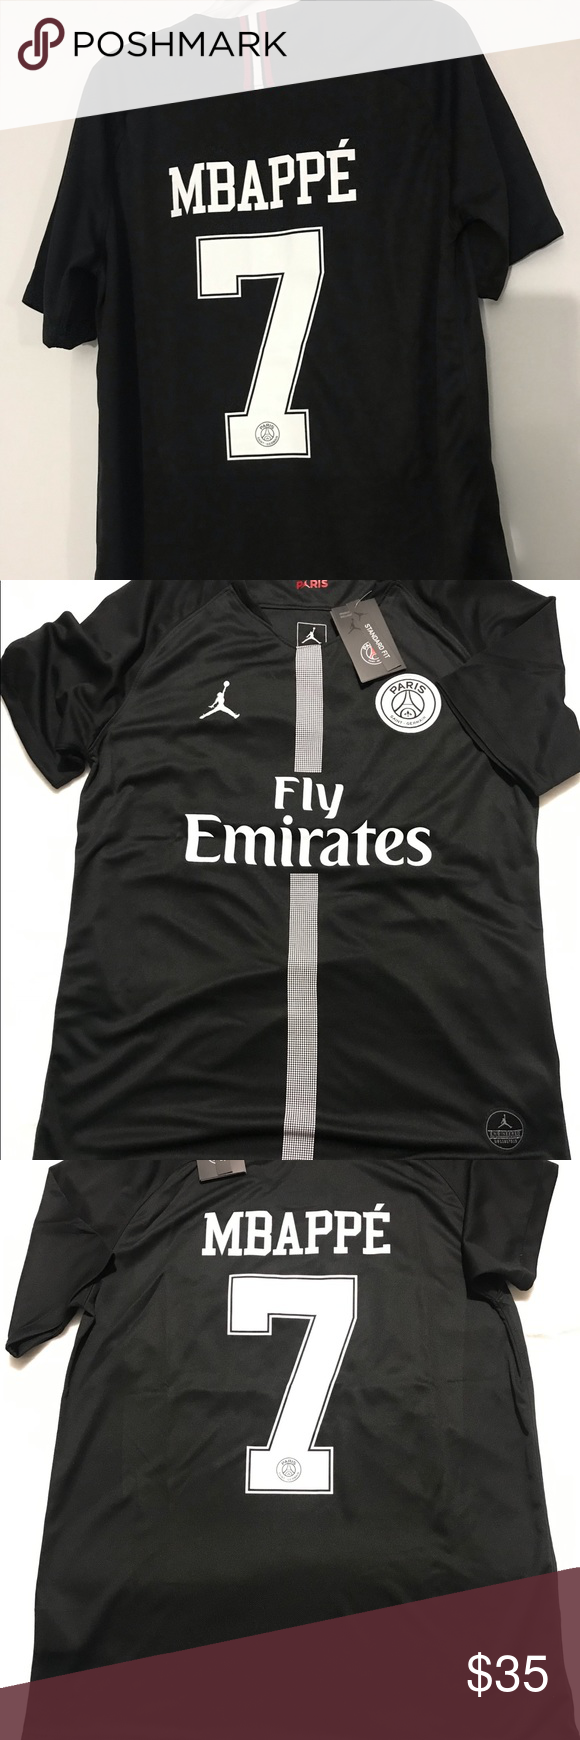 New Paris Saint Germain Mbappe 7 Jordan Jersey L Paris Saint Germain New Paris Jordan Jersey